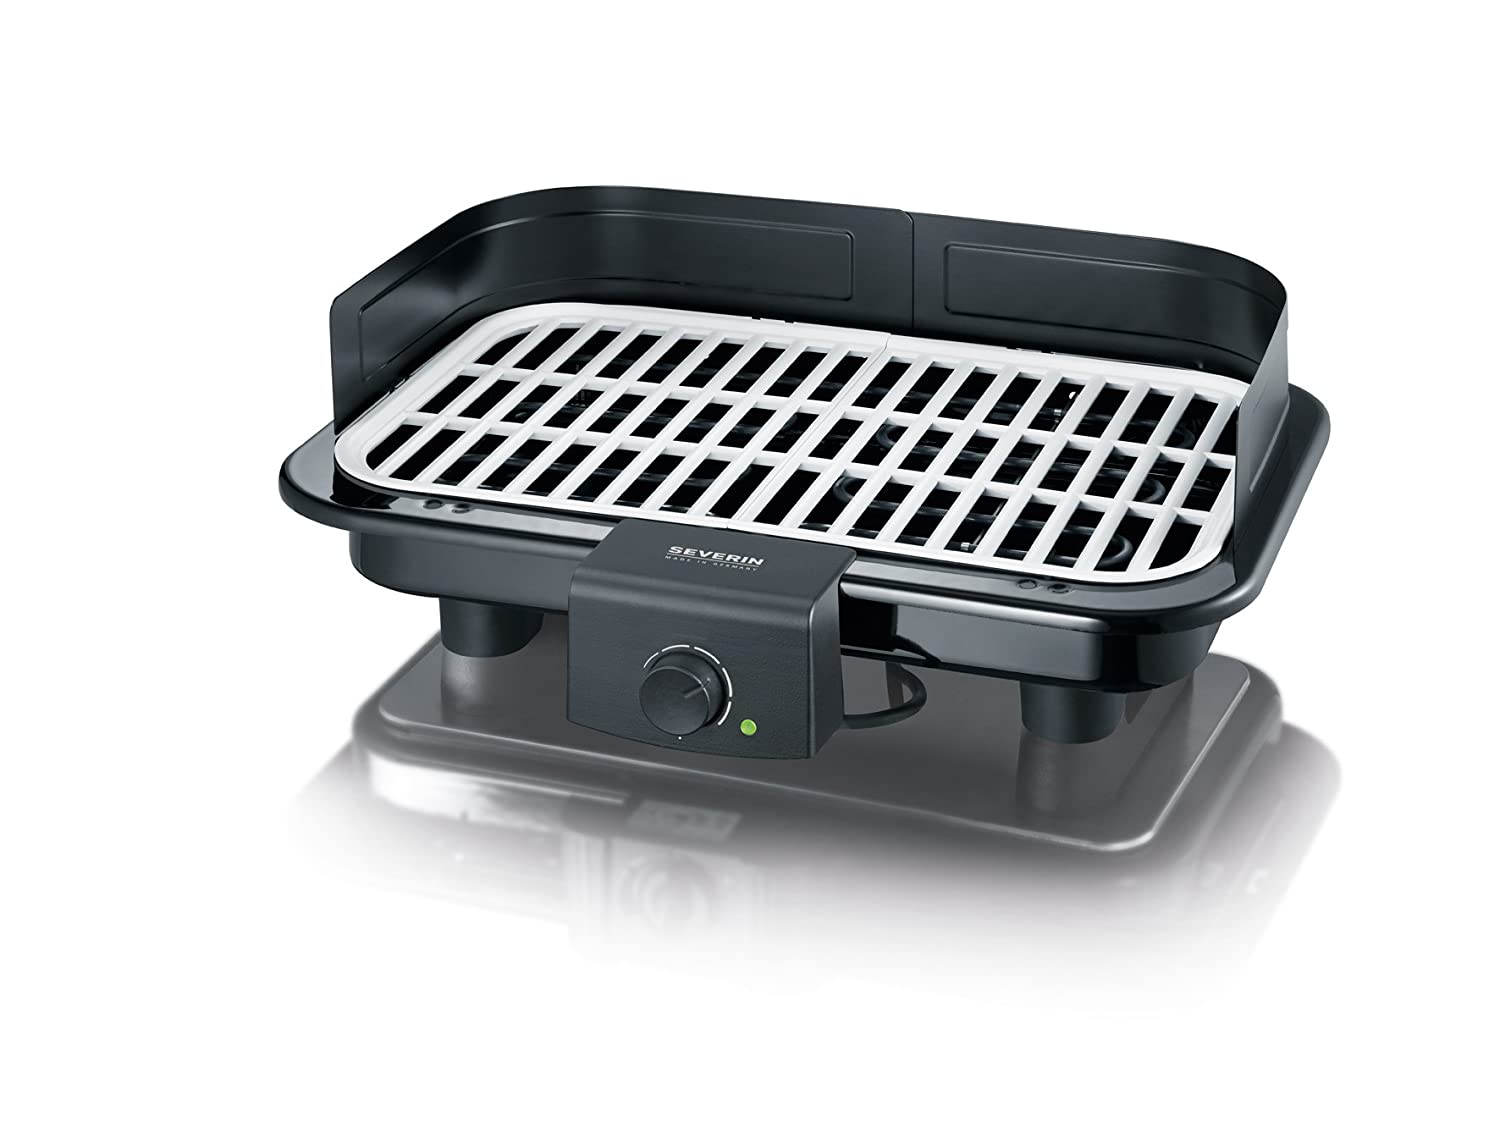 Severin Elektrogrill Stiftung Warentest : Severin pg 8530 barbecue grill 2.500w tischgrill grillfläche 44